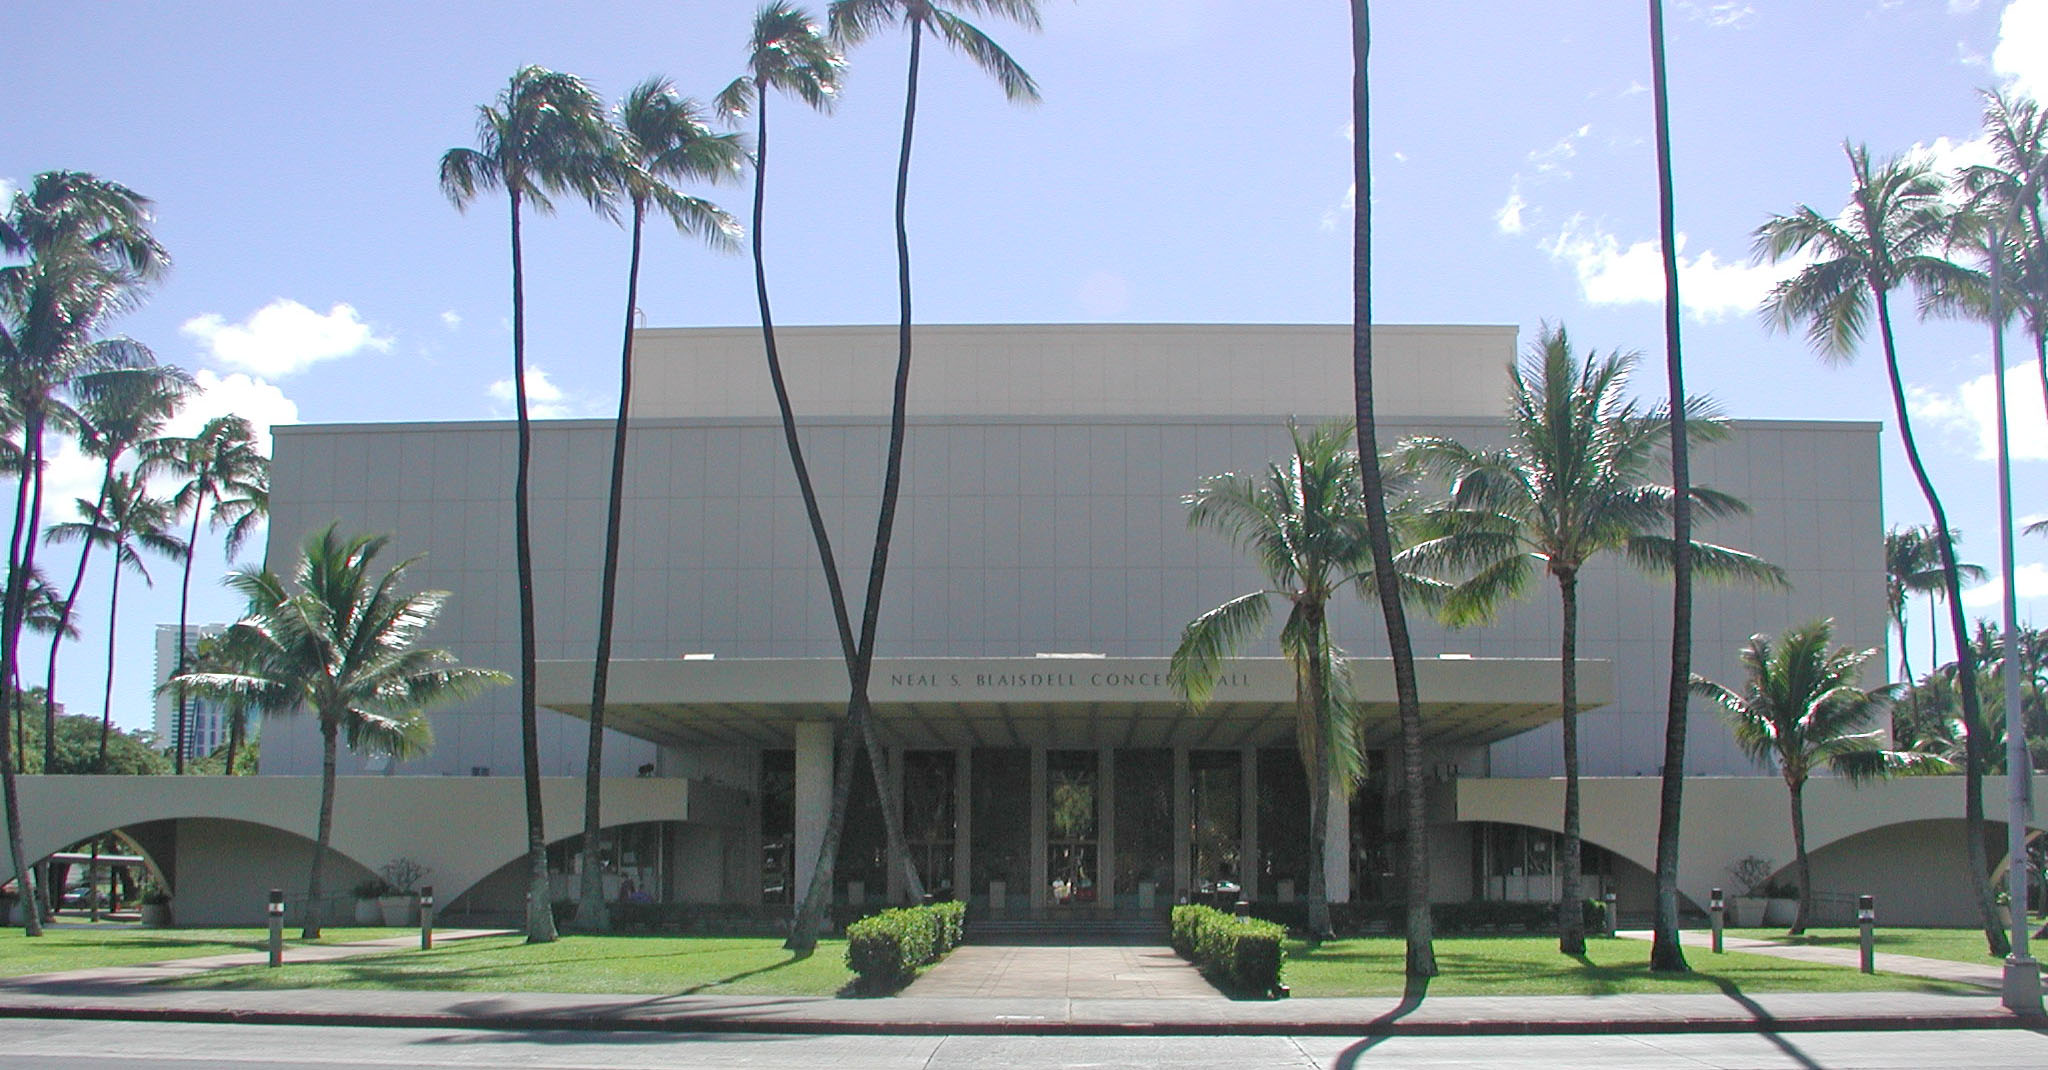 neal s  blaisdell center